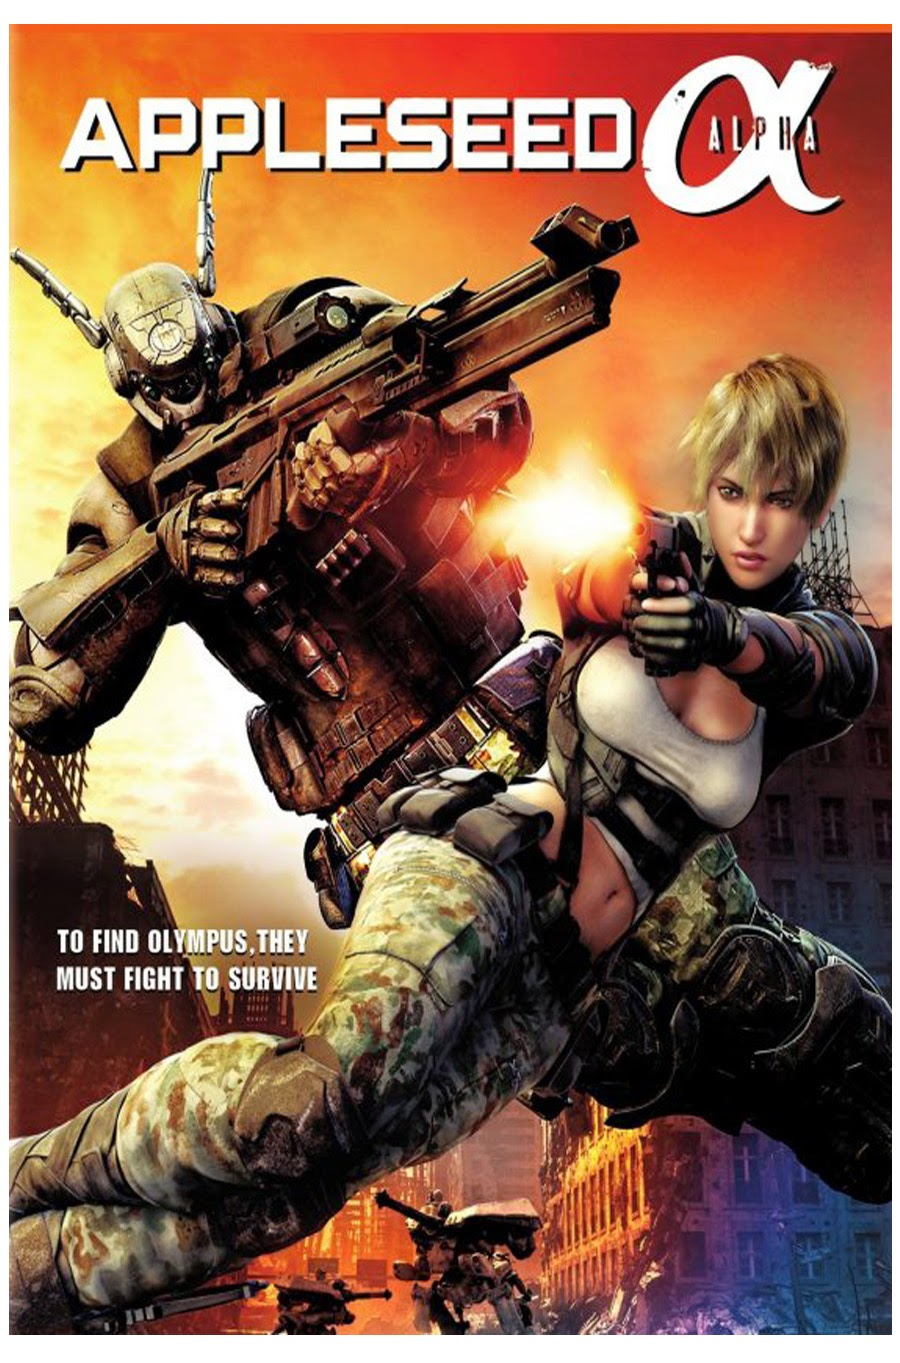 Regarder Appleseed Alpha en streaming